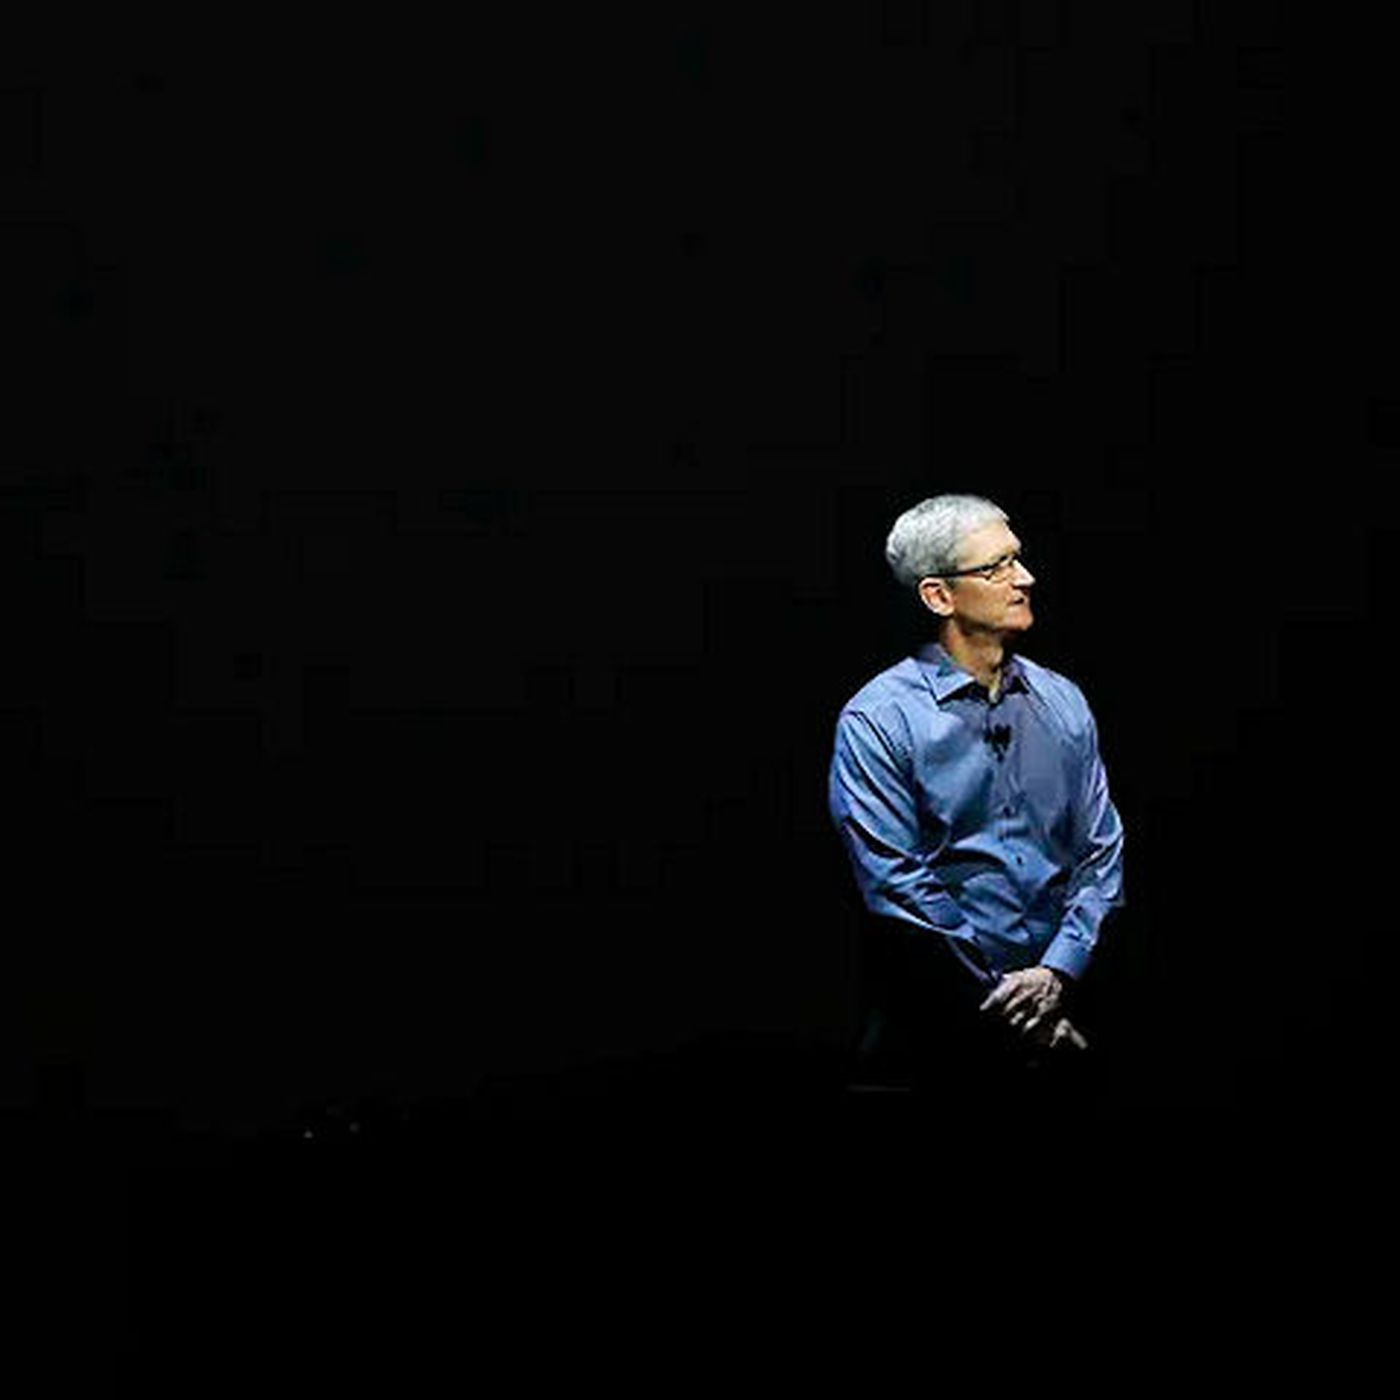 recode.net - Peter Kafka - Why Apple Walked Away From TV (For Now)